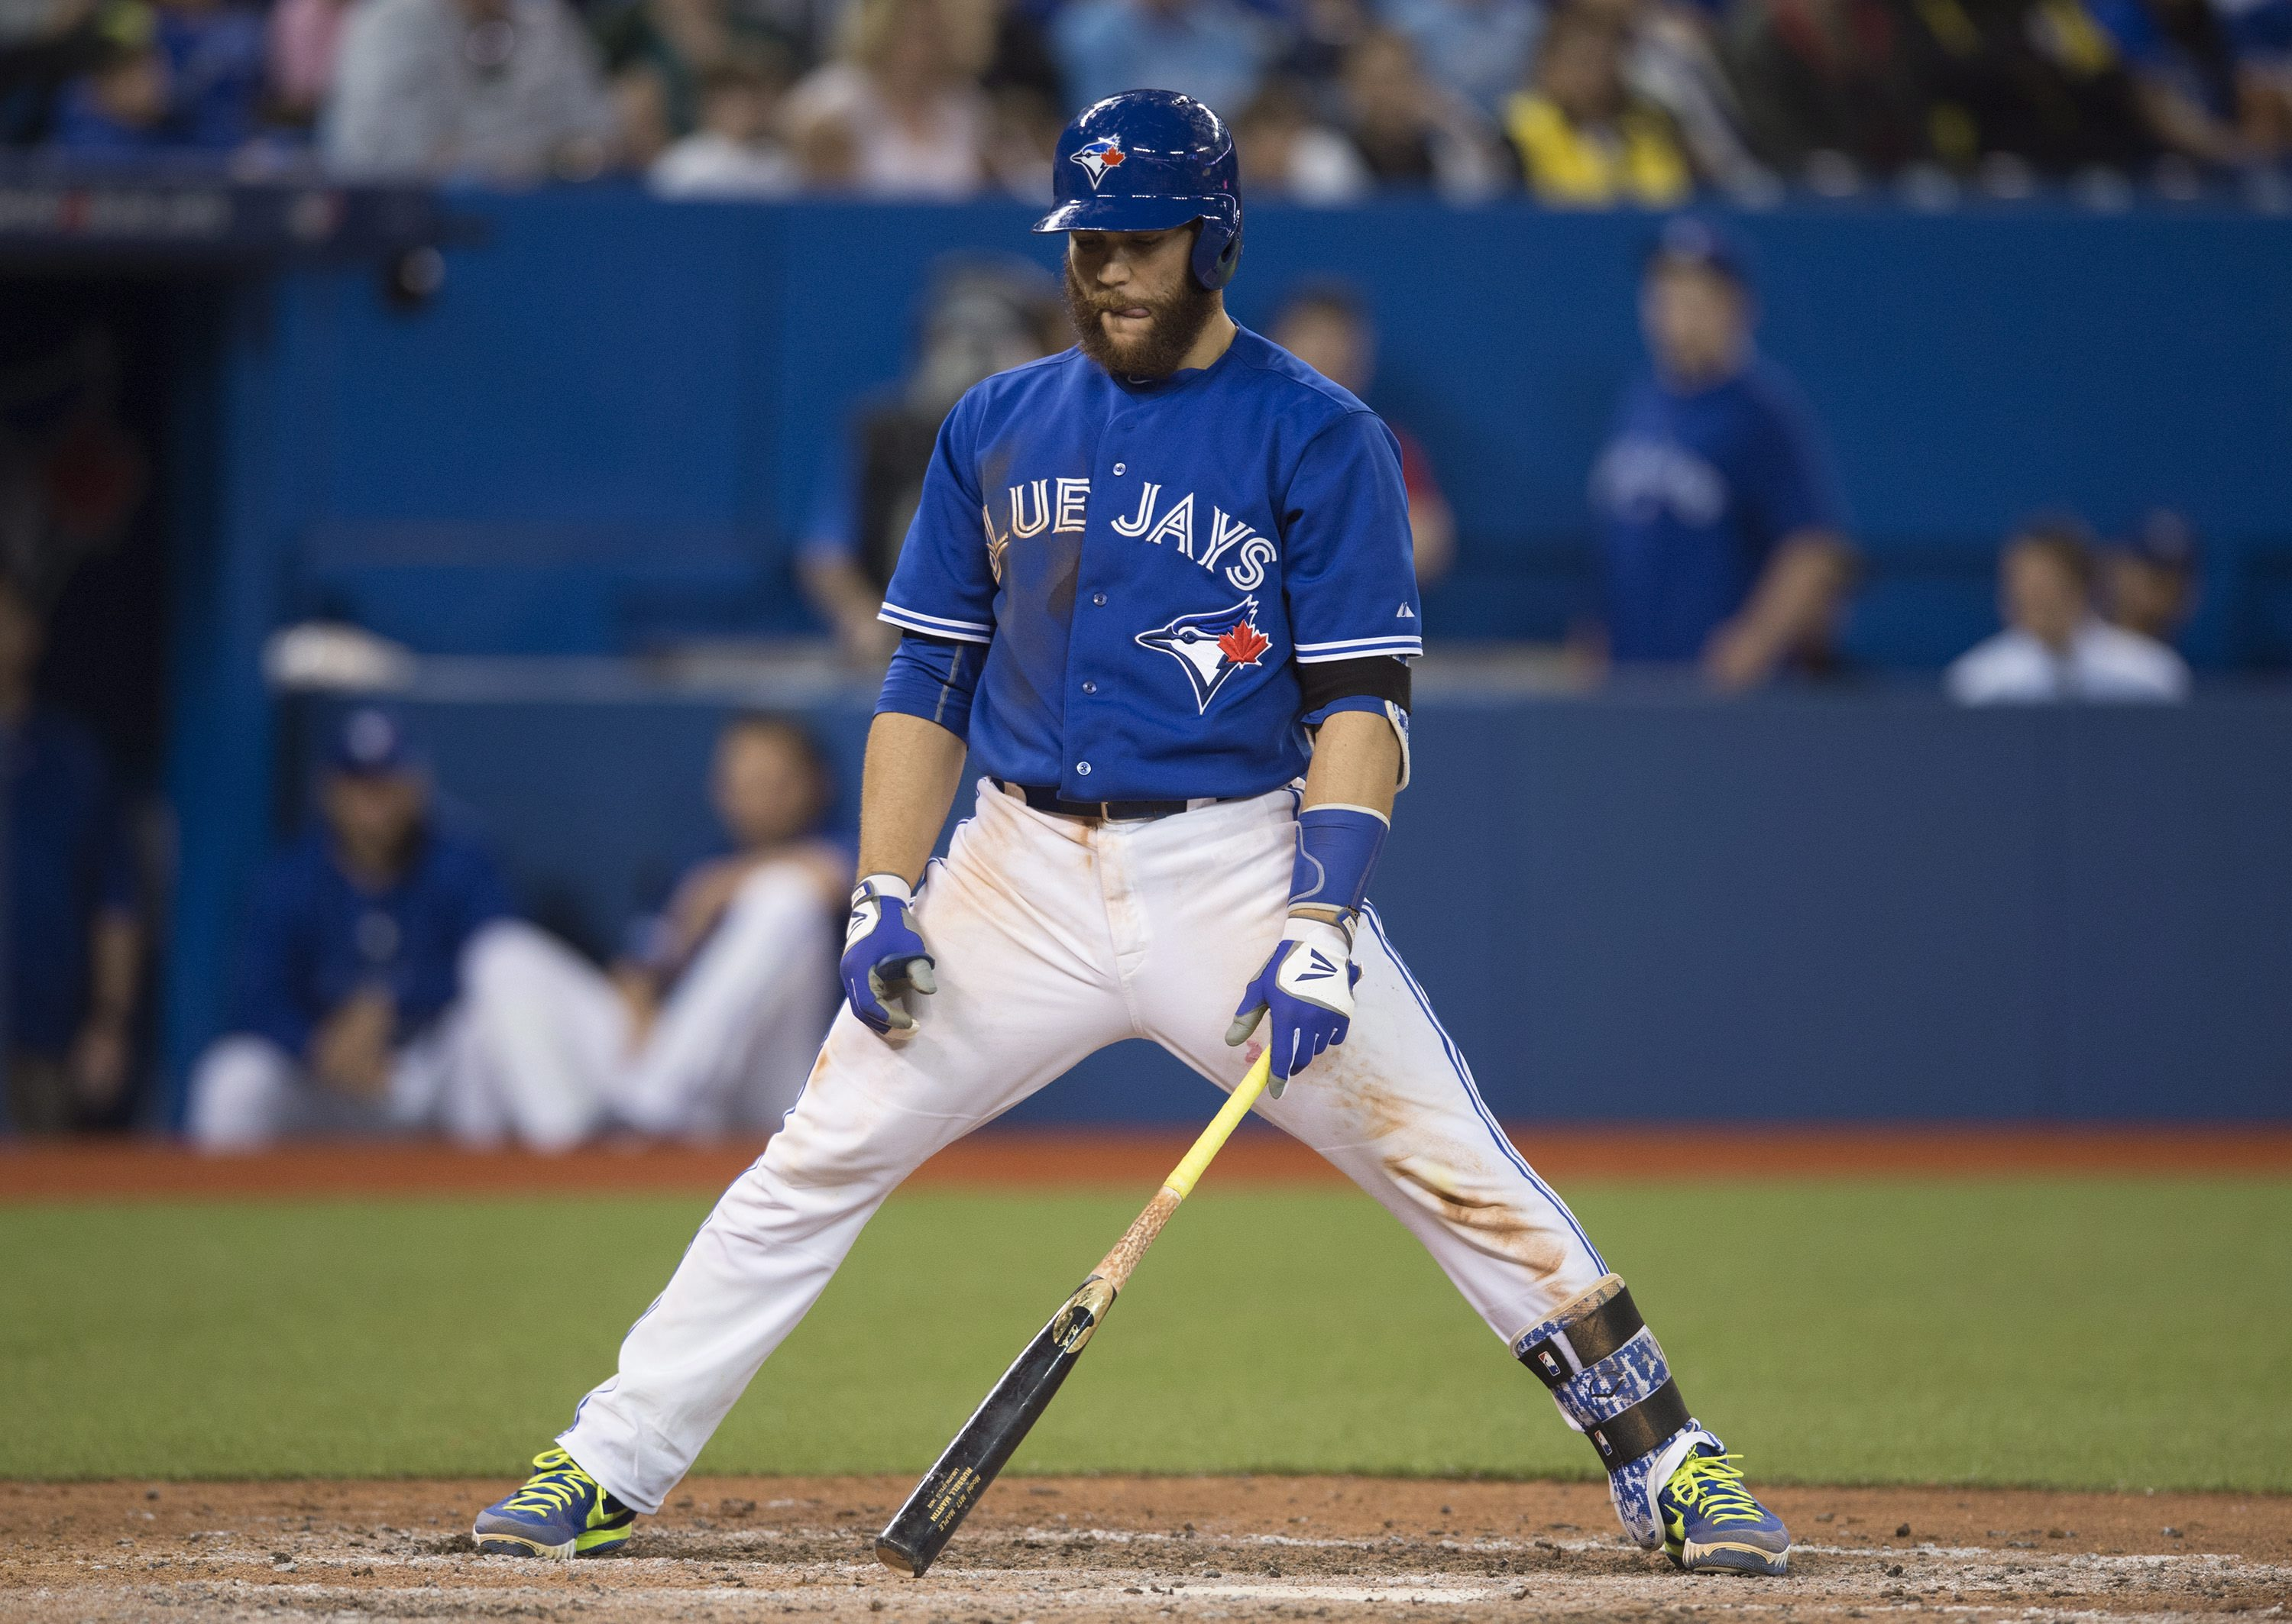 Toronto Blue Jays' Russell Martin reacts after striking out in the eighth inning of interleague baseball action against the Atlanta Braves in Toronto on Sunday, April 19, 2015. (Darren Calabrese/The Canadian Press via AP) MANDATORY CREDIT